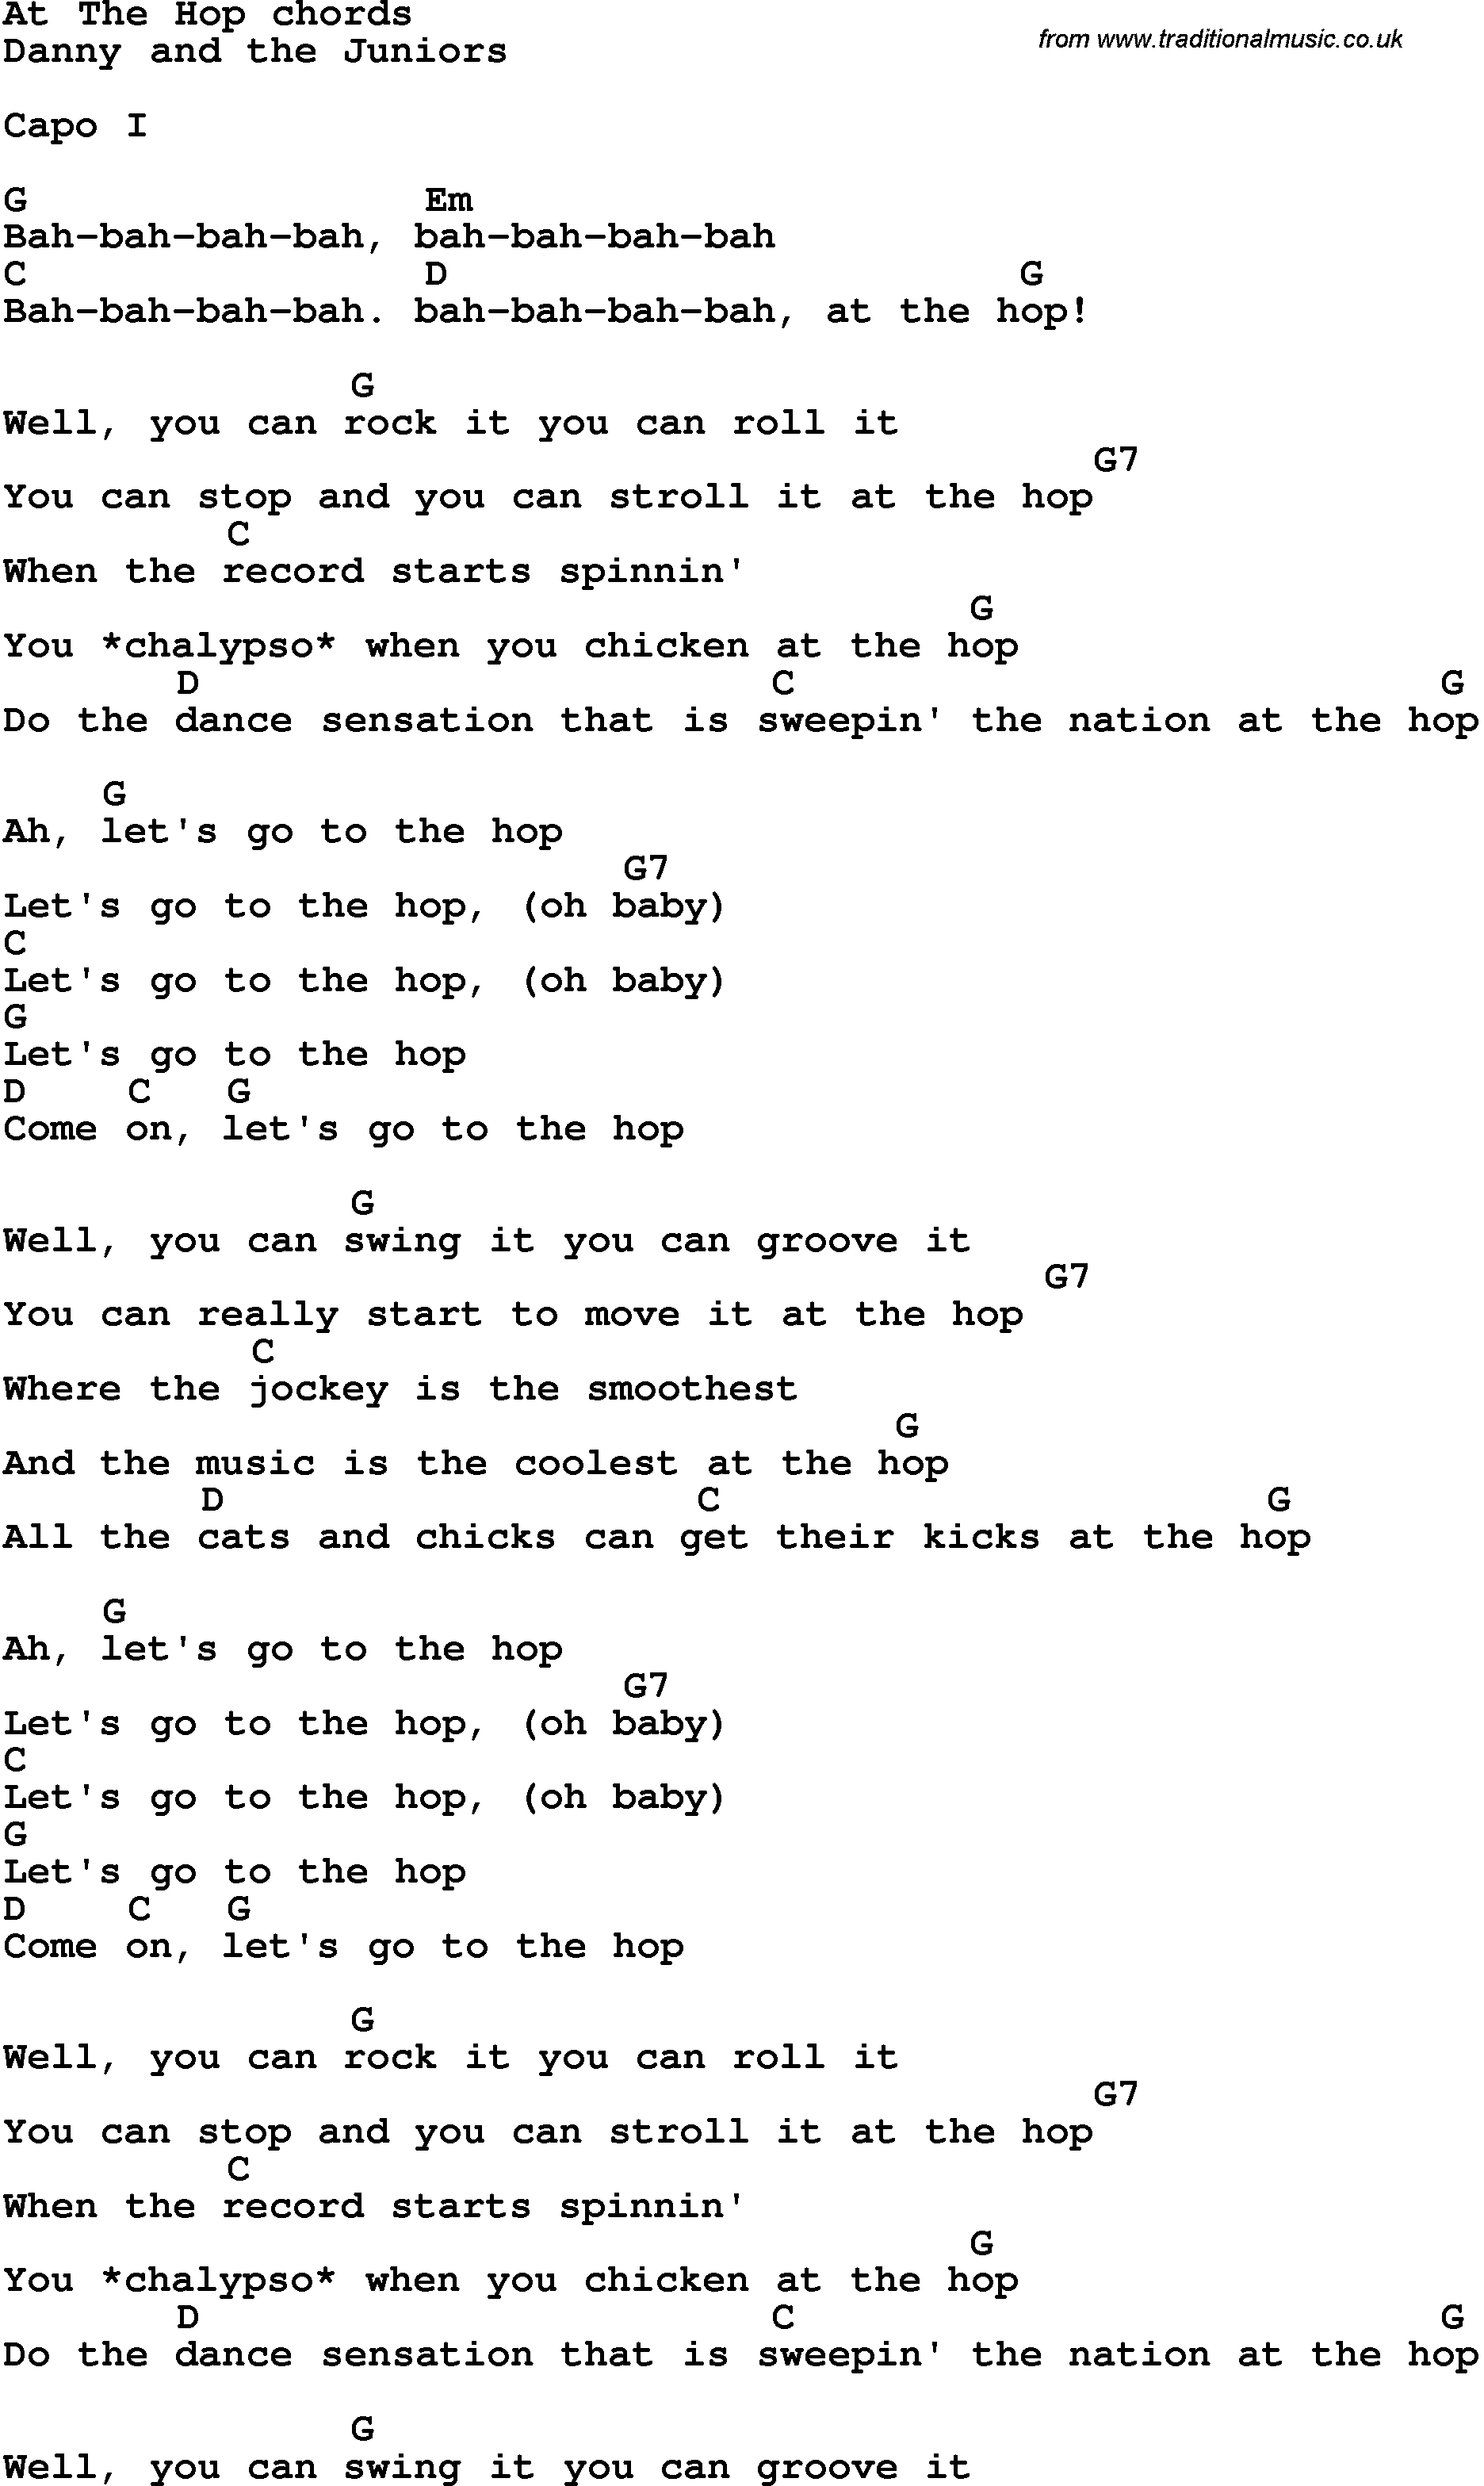 Song lyrics with guitar chords for at the hop musician song lyrics with guitar chords for at the hop hexwebz Image collections